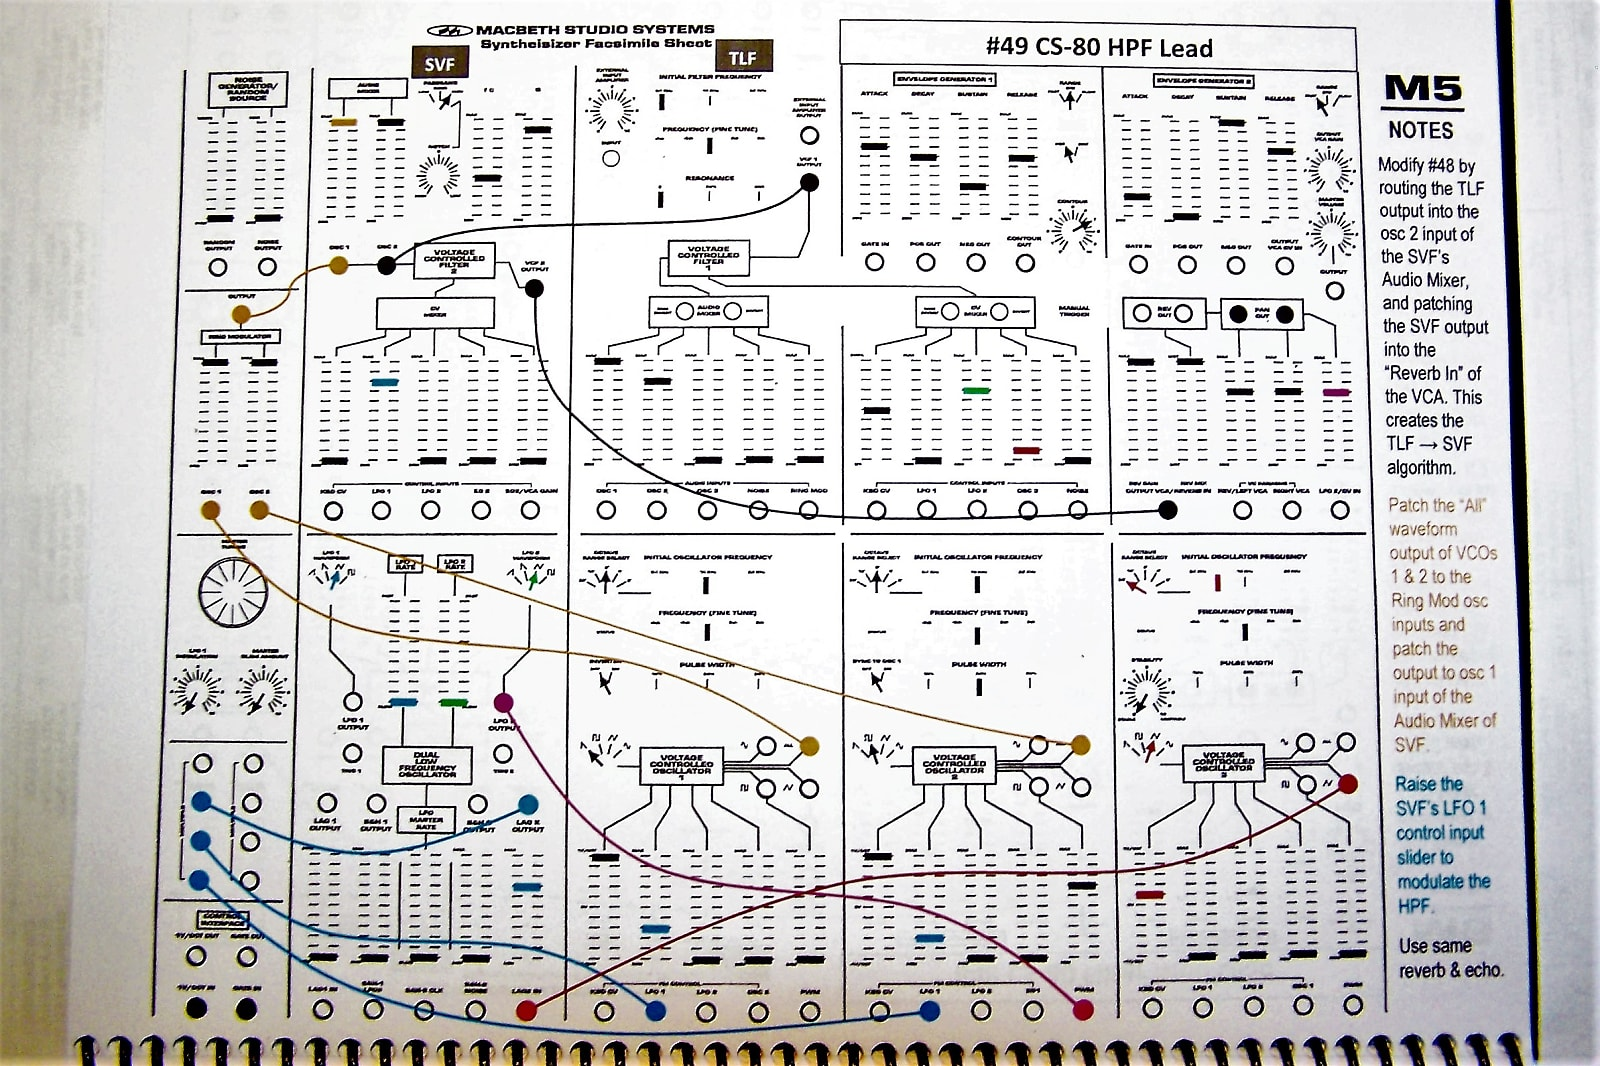 MATRIXSYNTH: MacBeth M5/M5N Owner's Manual & Patch Book by